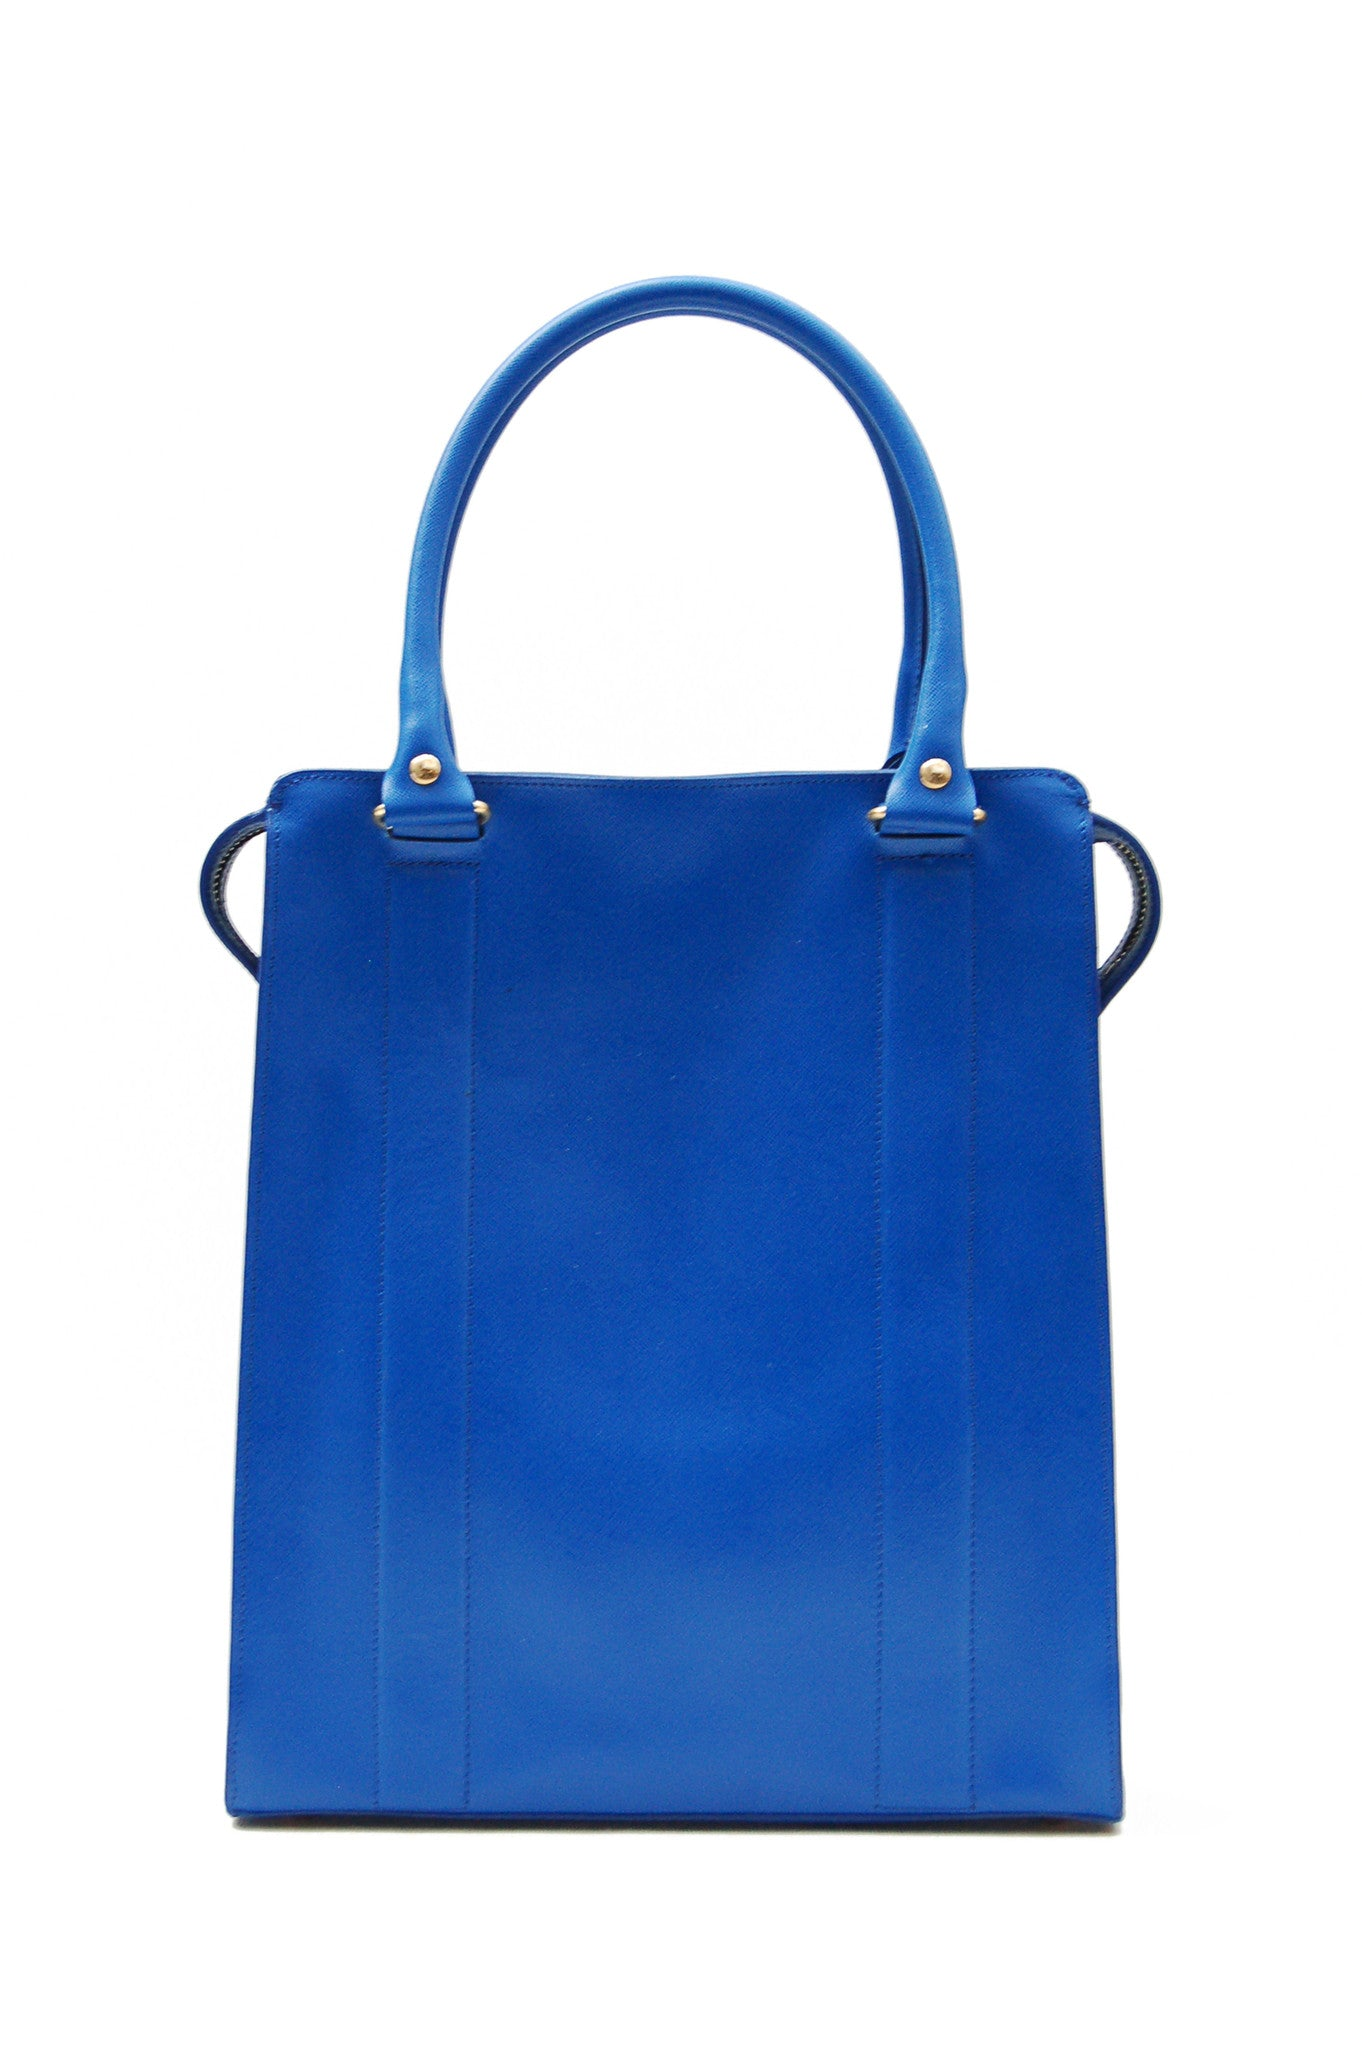 Wendee Ou: Ziggy structured bag blue | Bags > Totes,Bags -  Hiphunters Shop